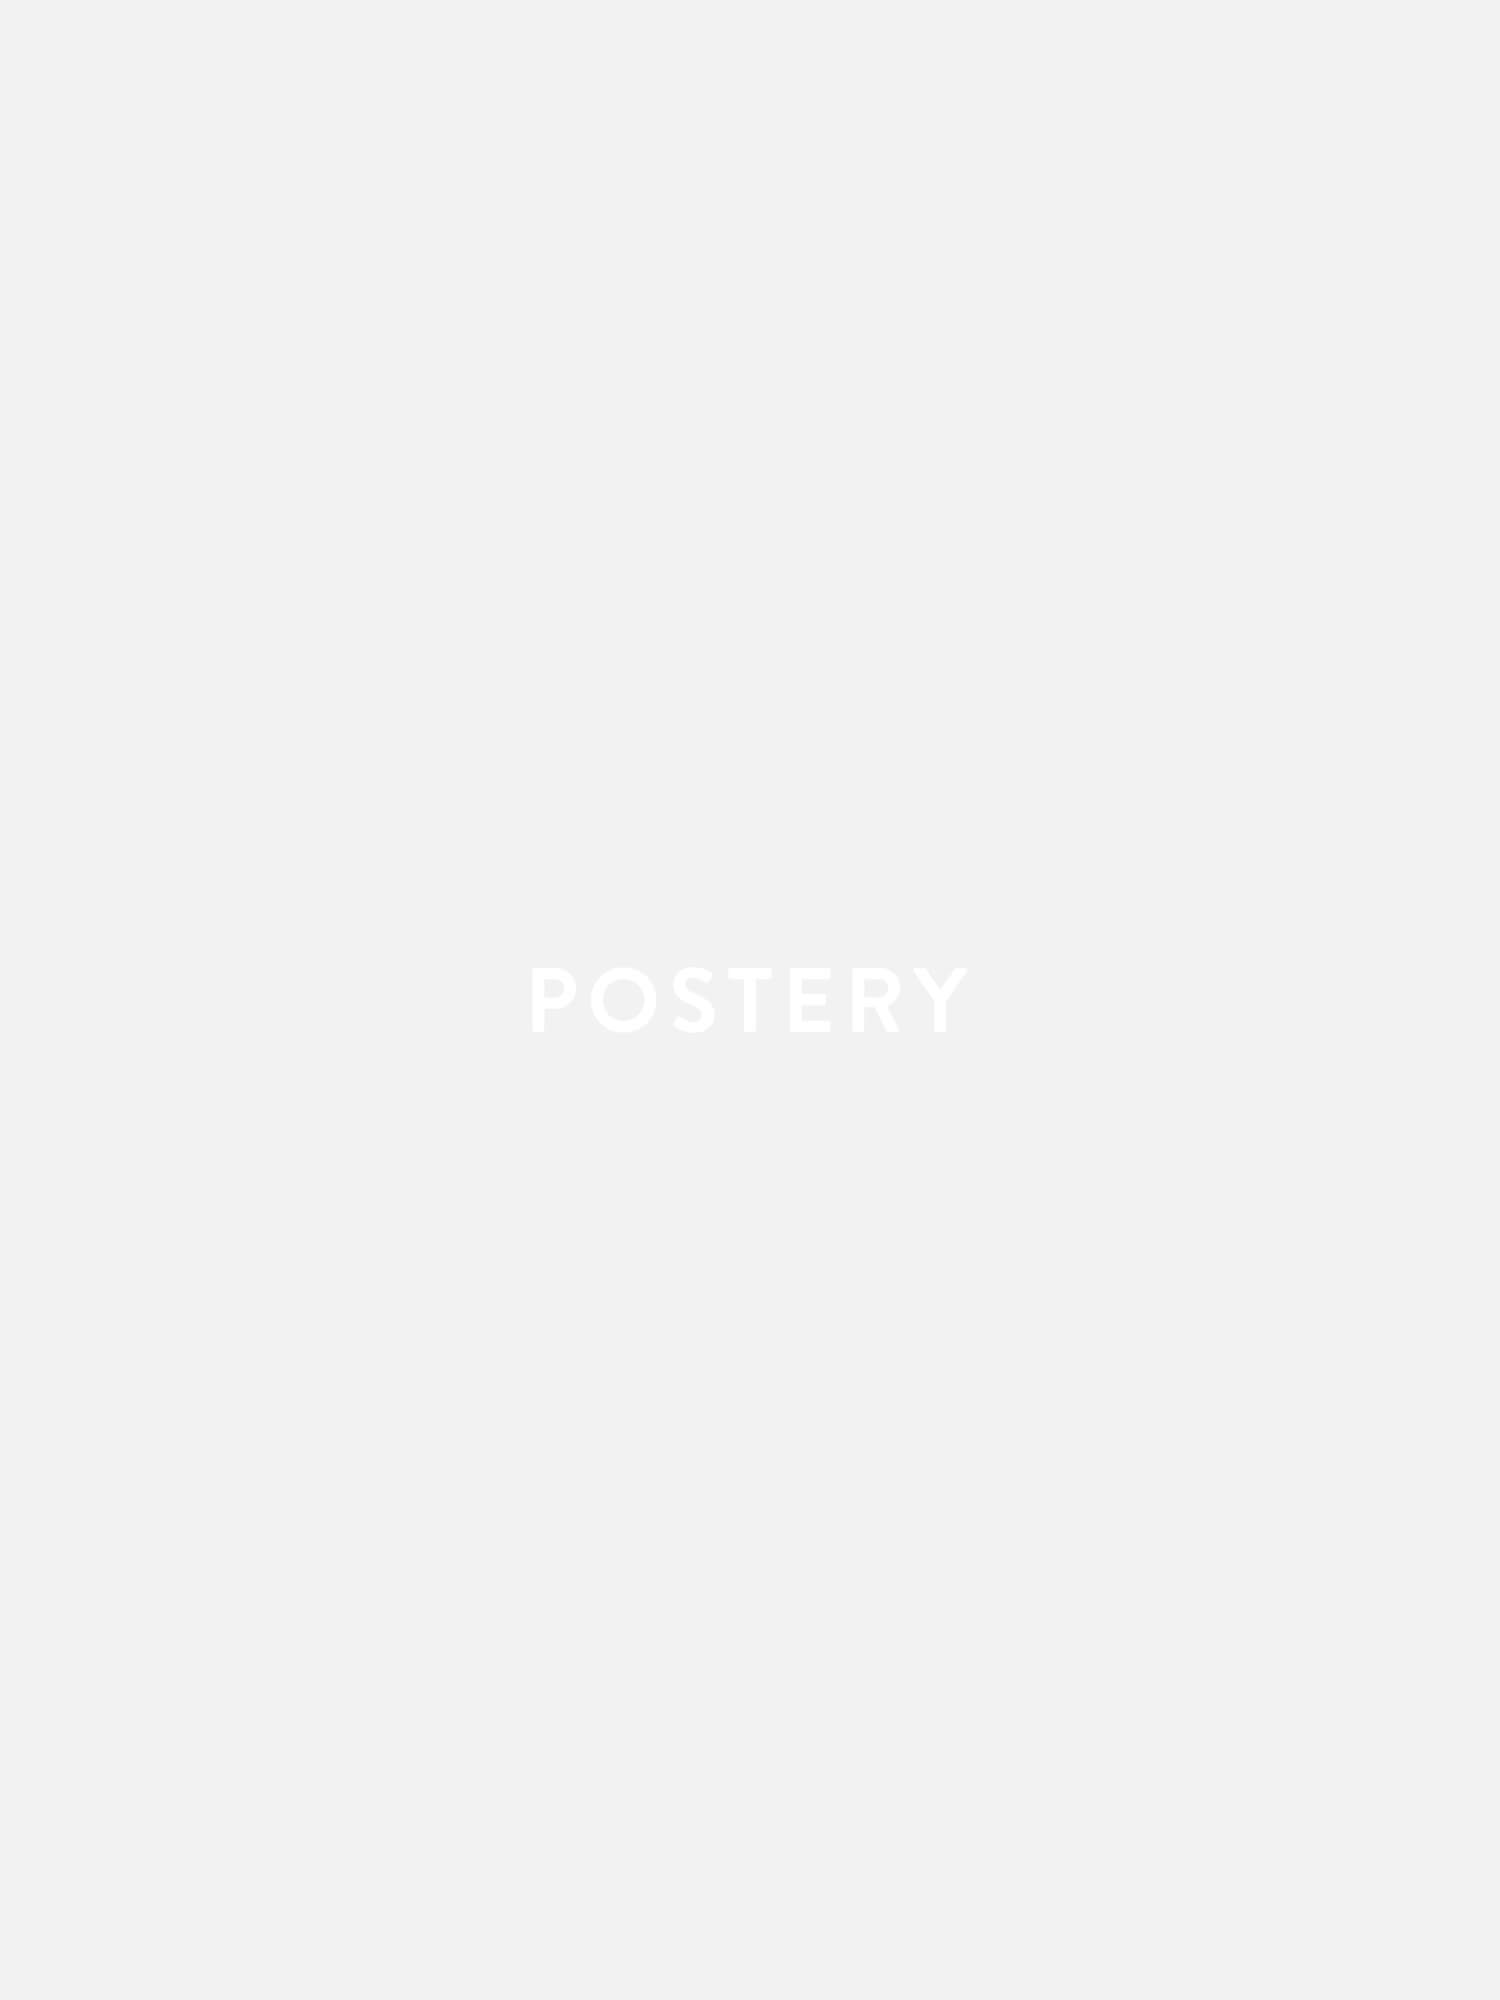 Earth Peony Poster